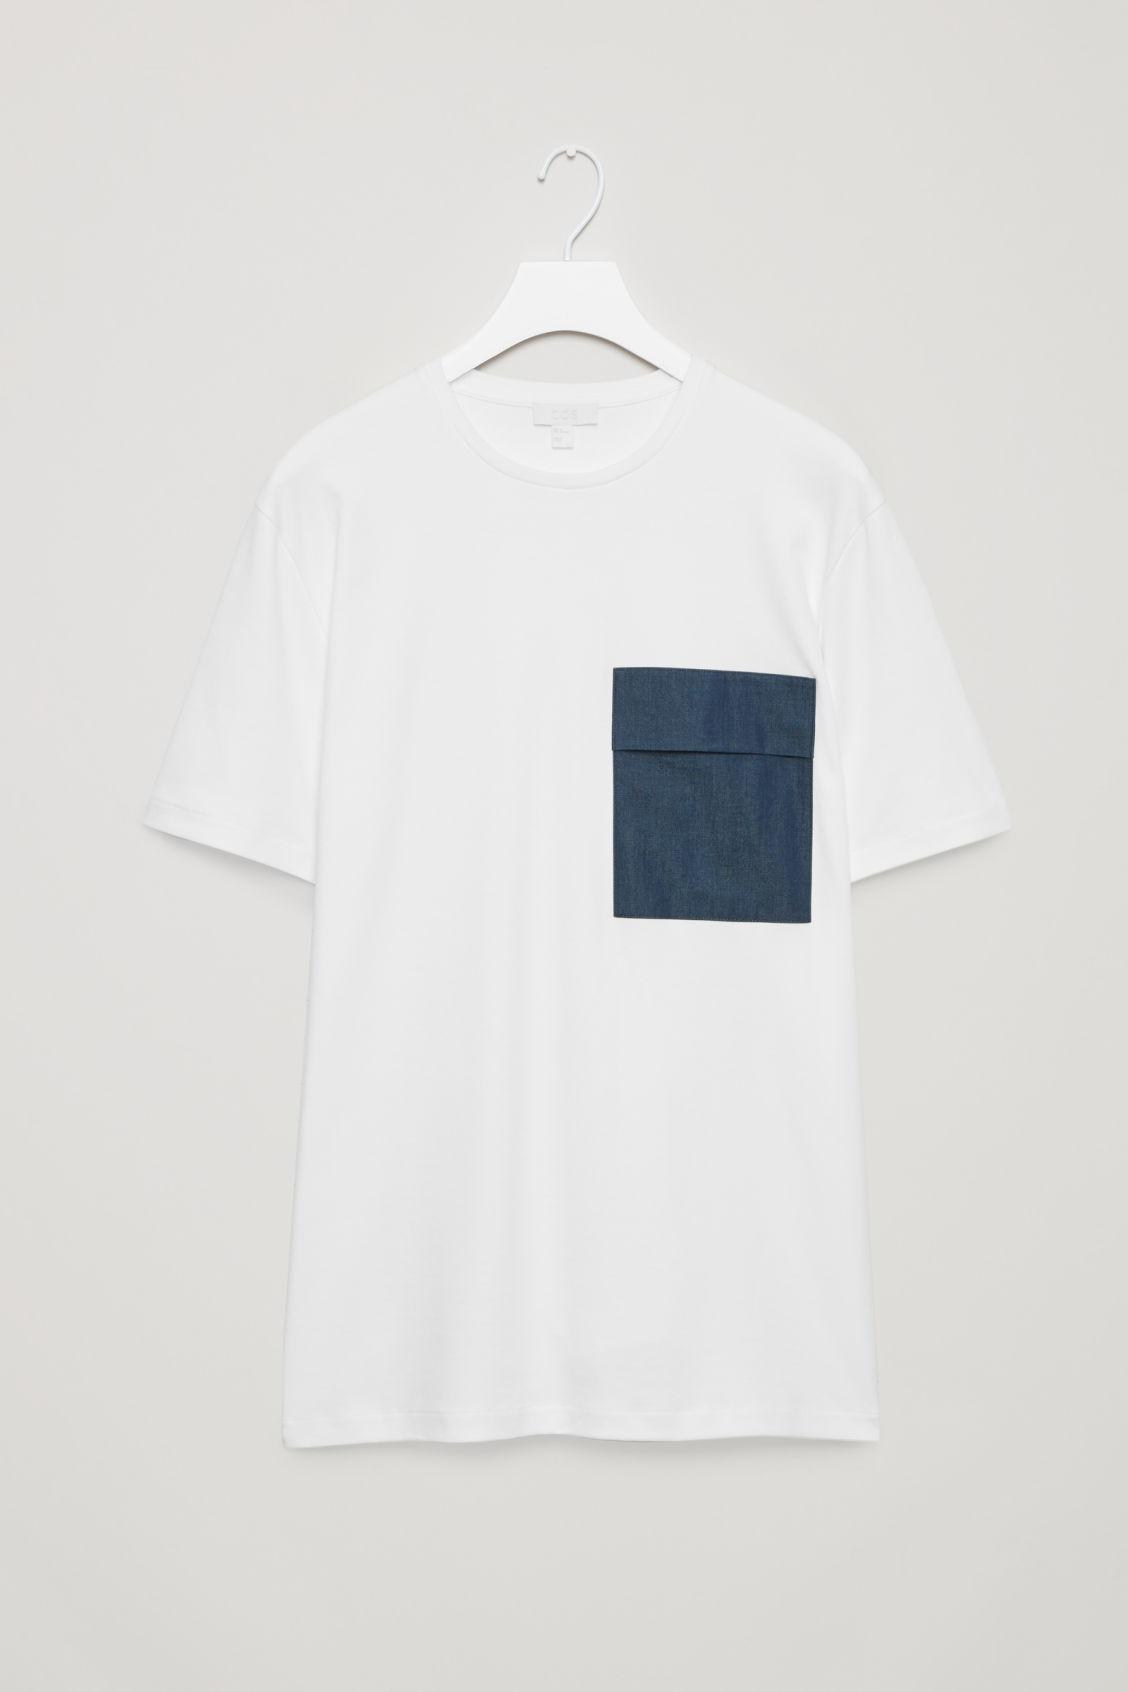 c4c17b8396b Lyst - COS T-shirt With Denim Pocket in White for Men